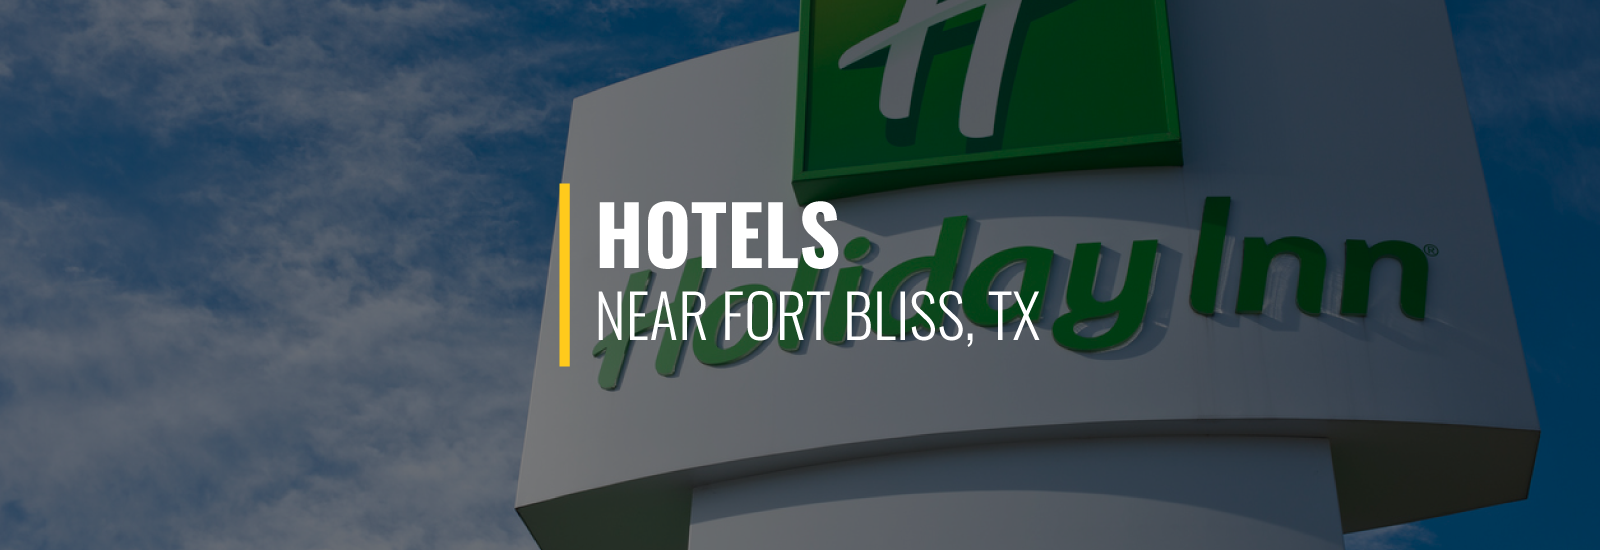 Fort Bliss Hotels